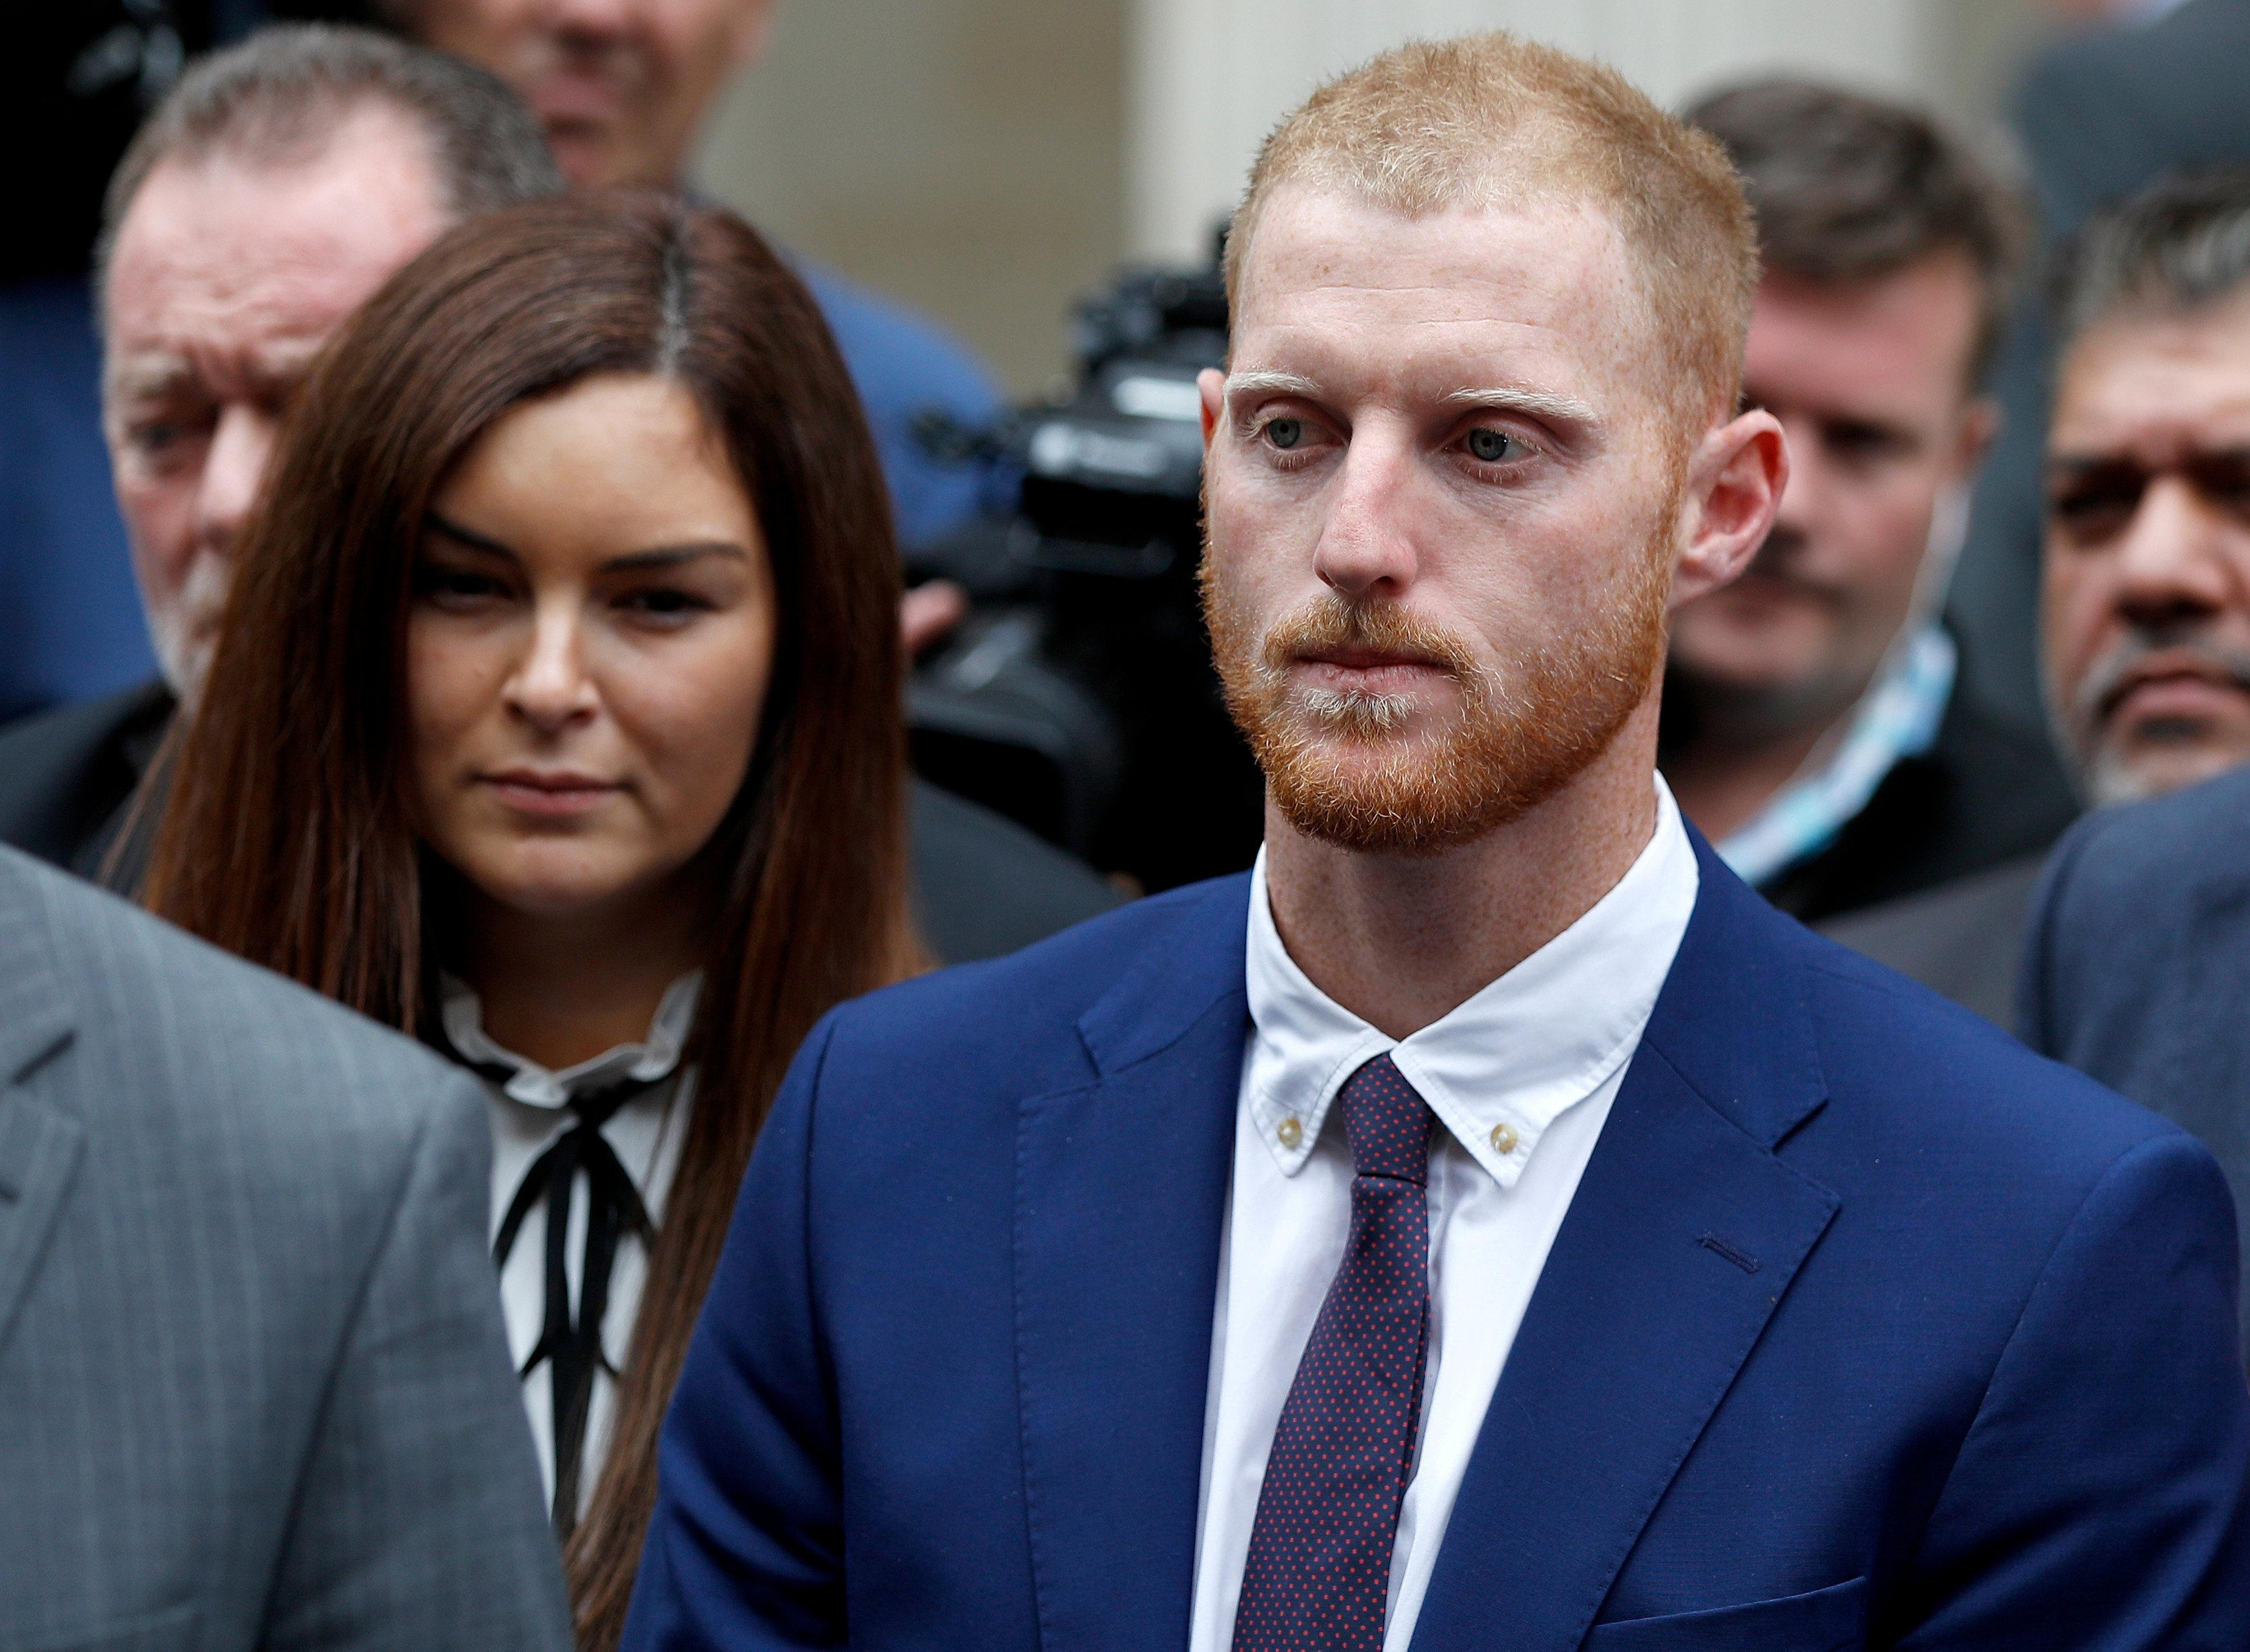 Ben Stokes was found not guilty of affray in Bristol earlier this week